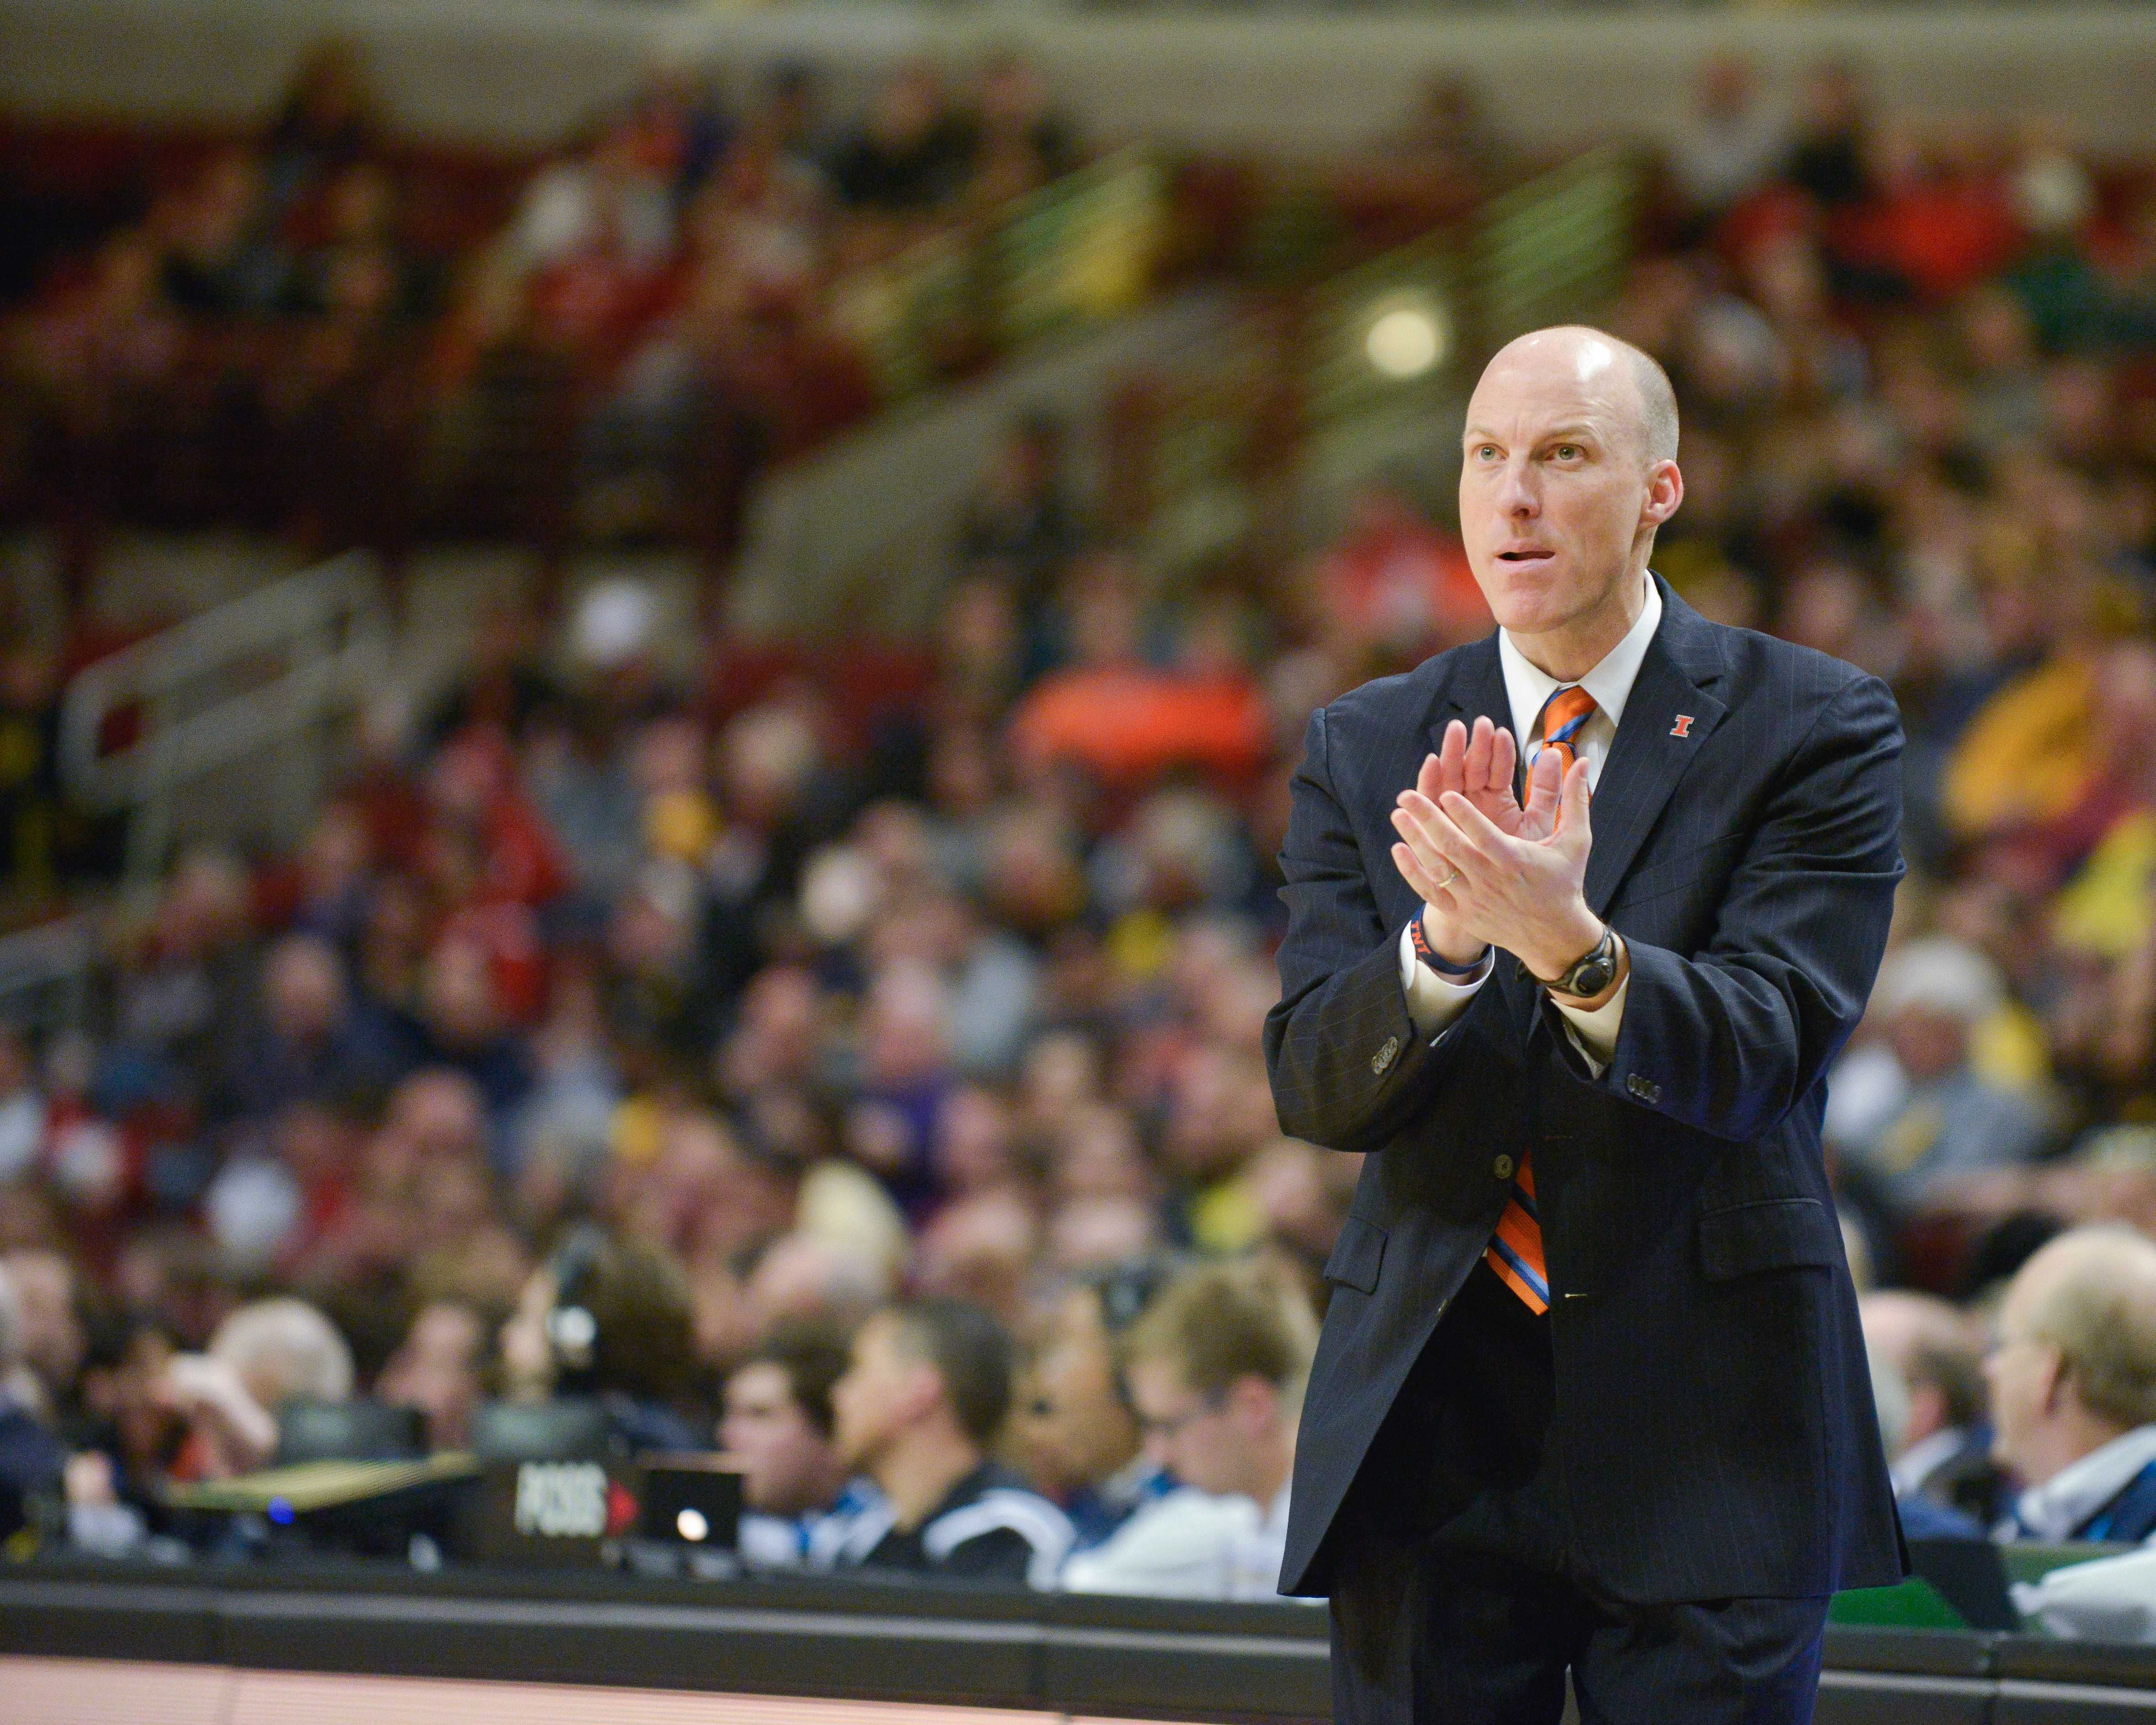 Illinois' head coach John Groce claps after a Michigan turnover during the game at United Center in Chicago, Illinois during the Big Ten Tournament on Thursday, March 12, 2015.